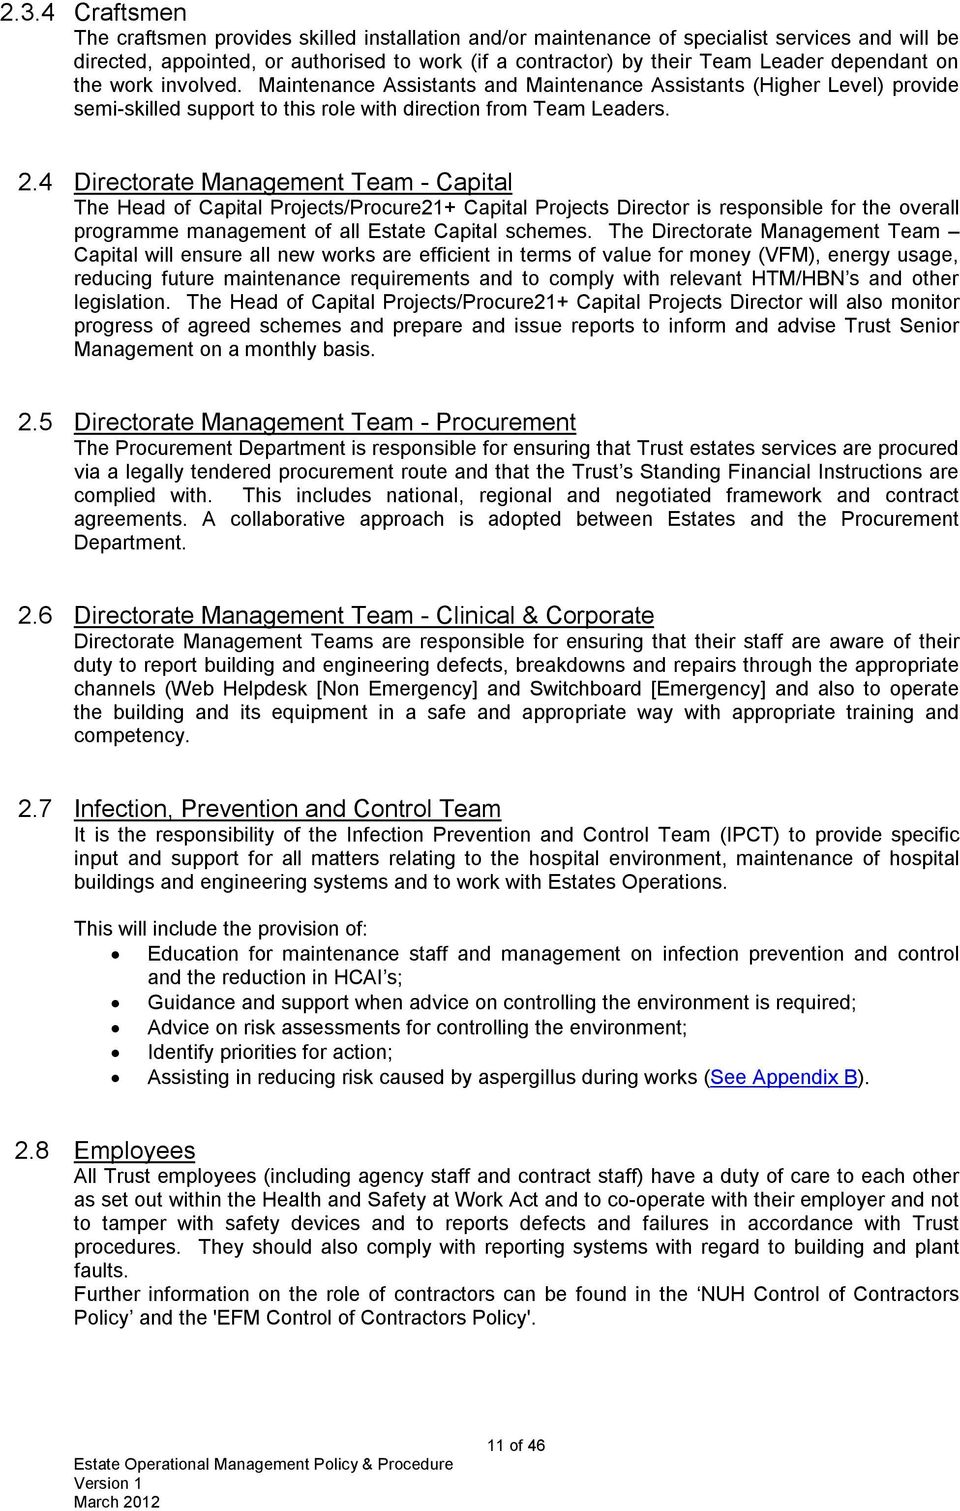 Operational staff: instructions and duties. Who are the operational staff